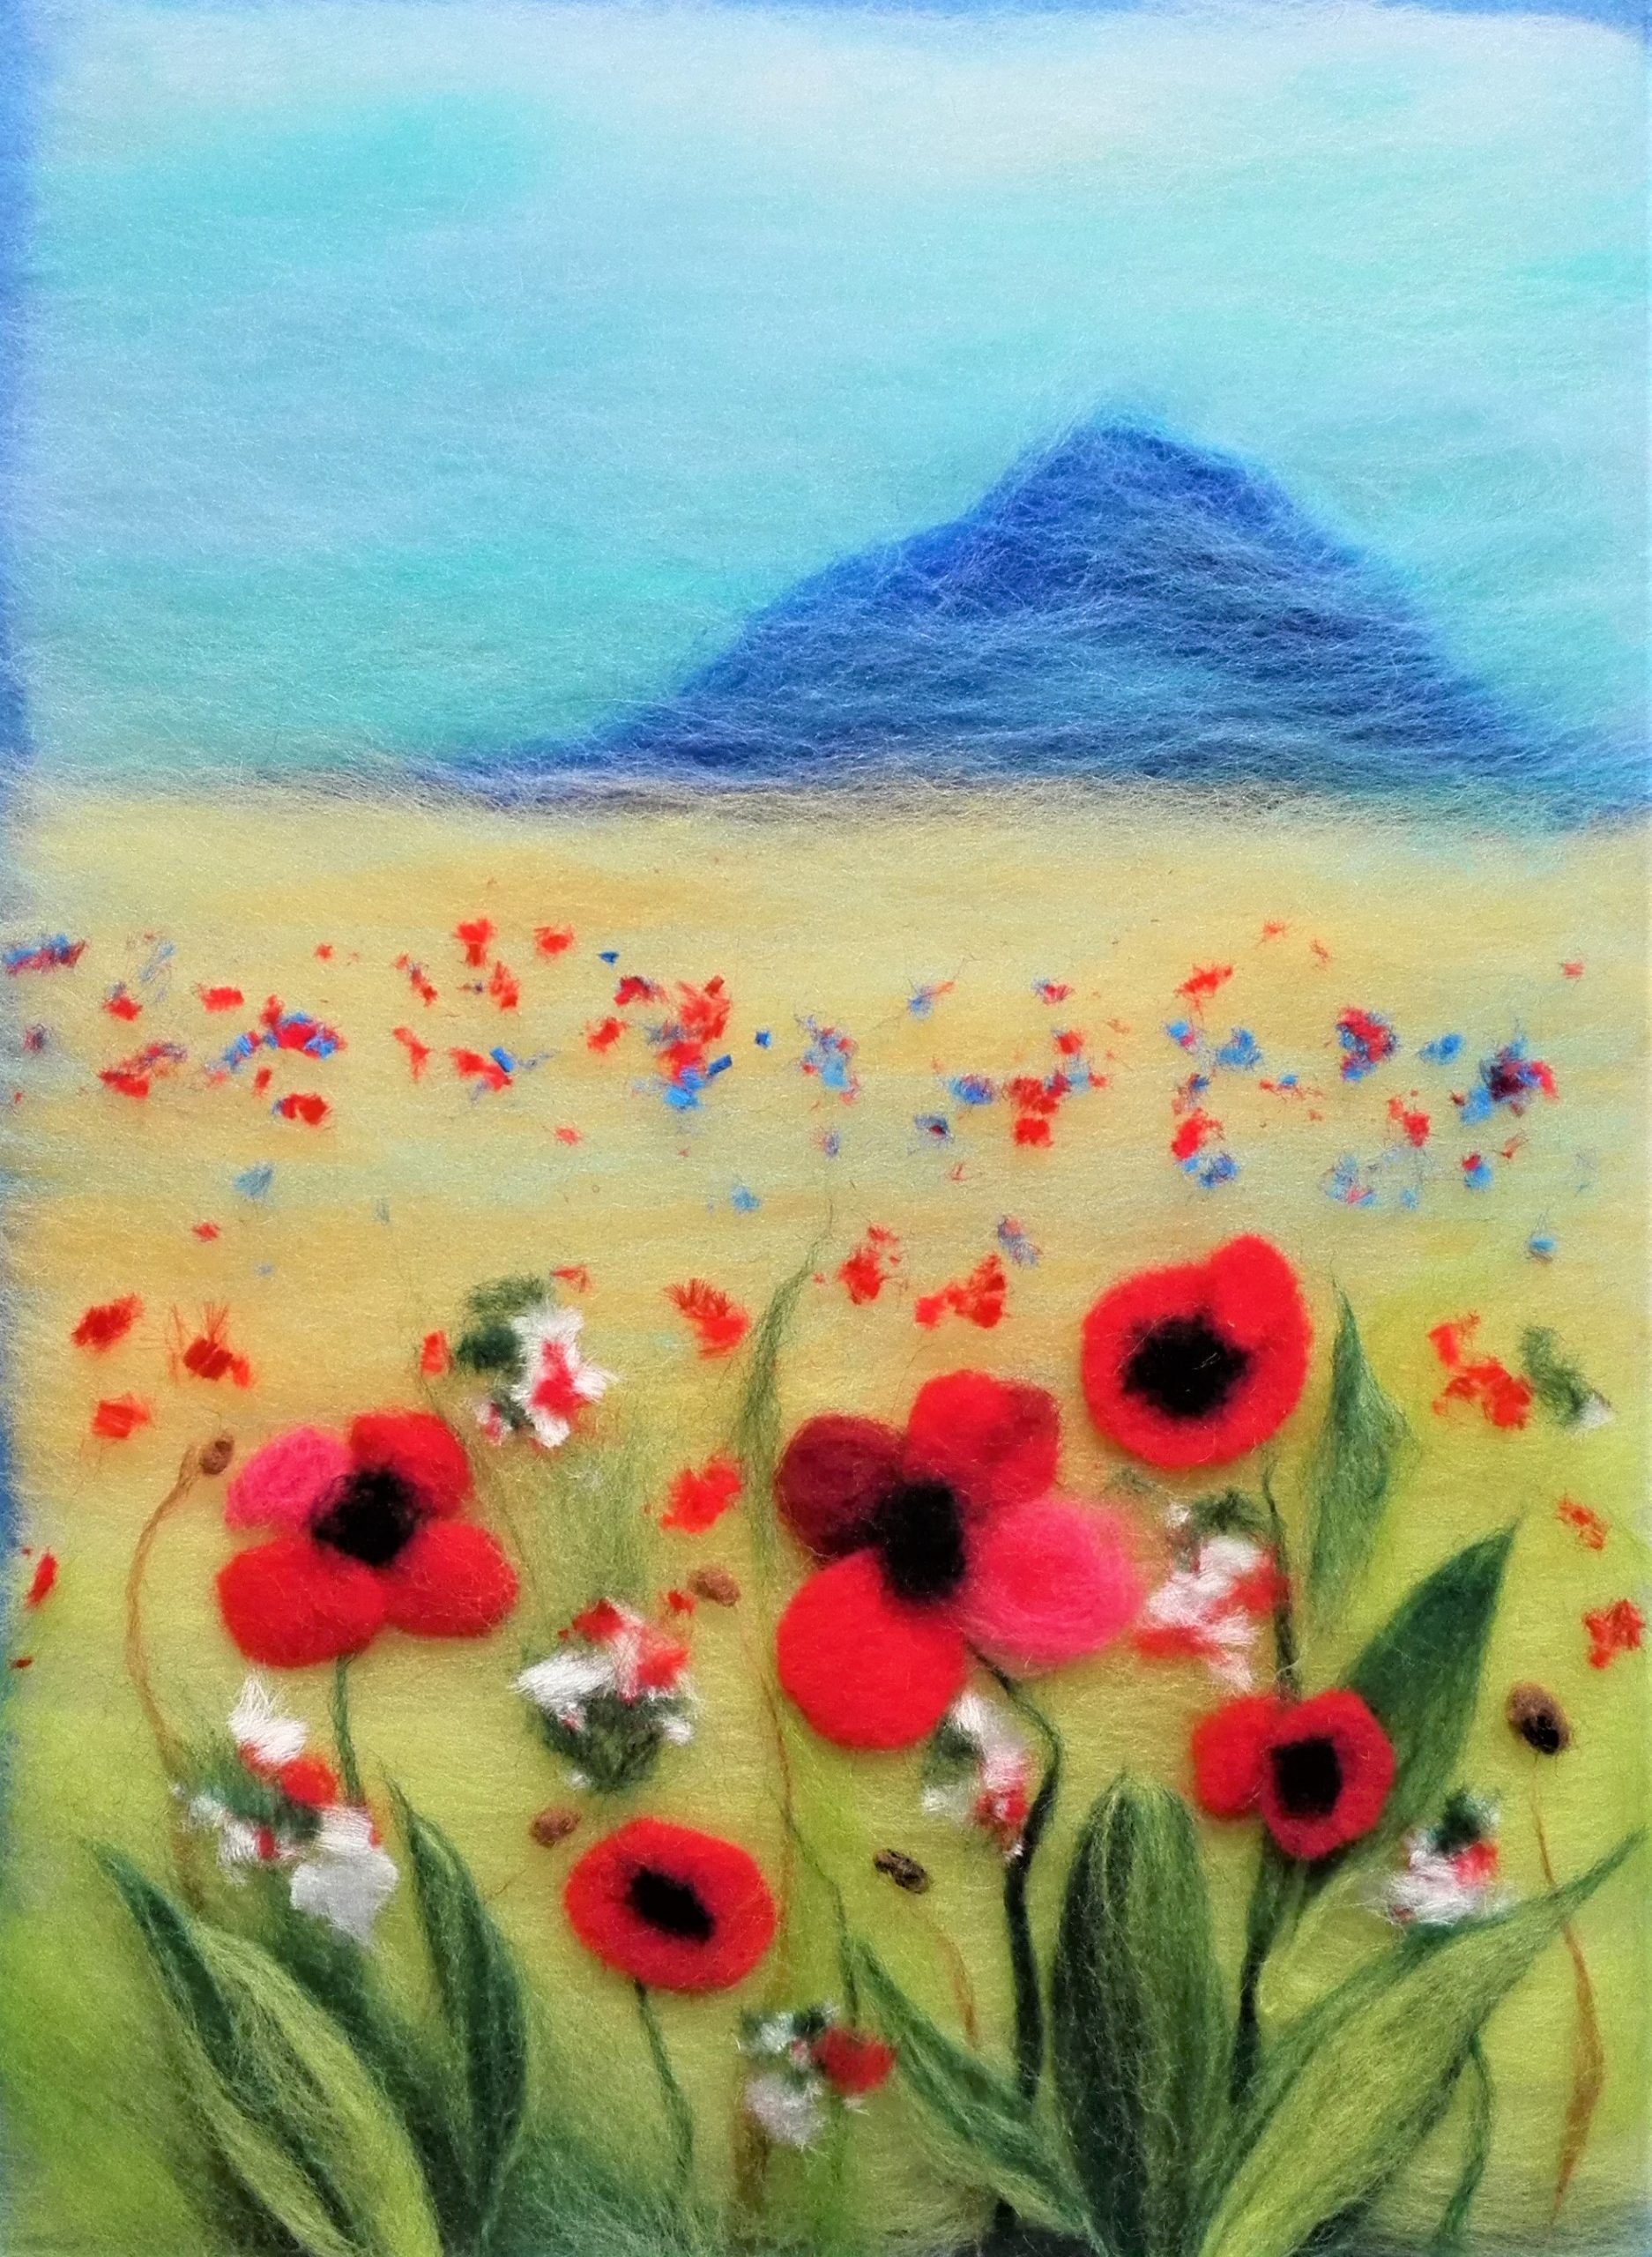 Field with red poppies wool painting created at online art course with live tuition